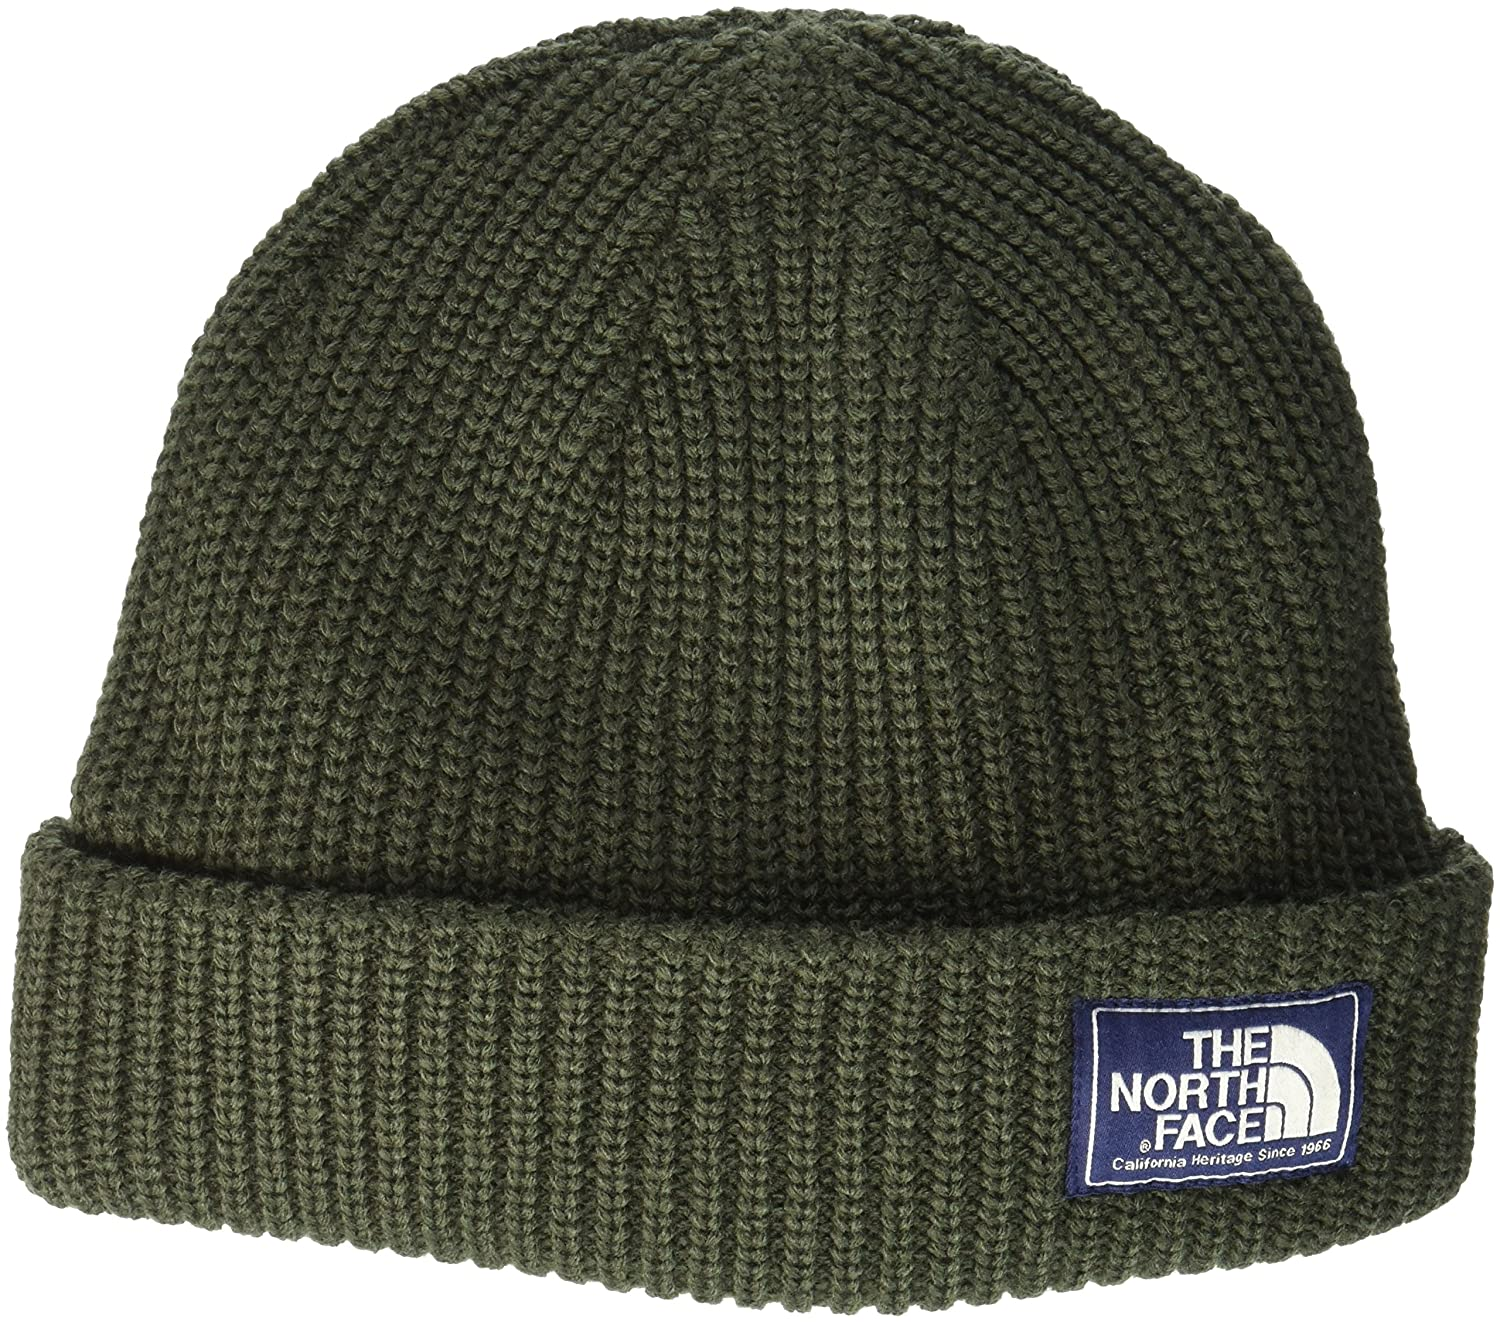 01d57ea0f69 The North Face Salty Dog Beanie at Amazon Men s Clothing store